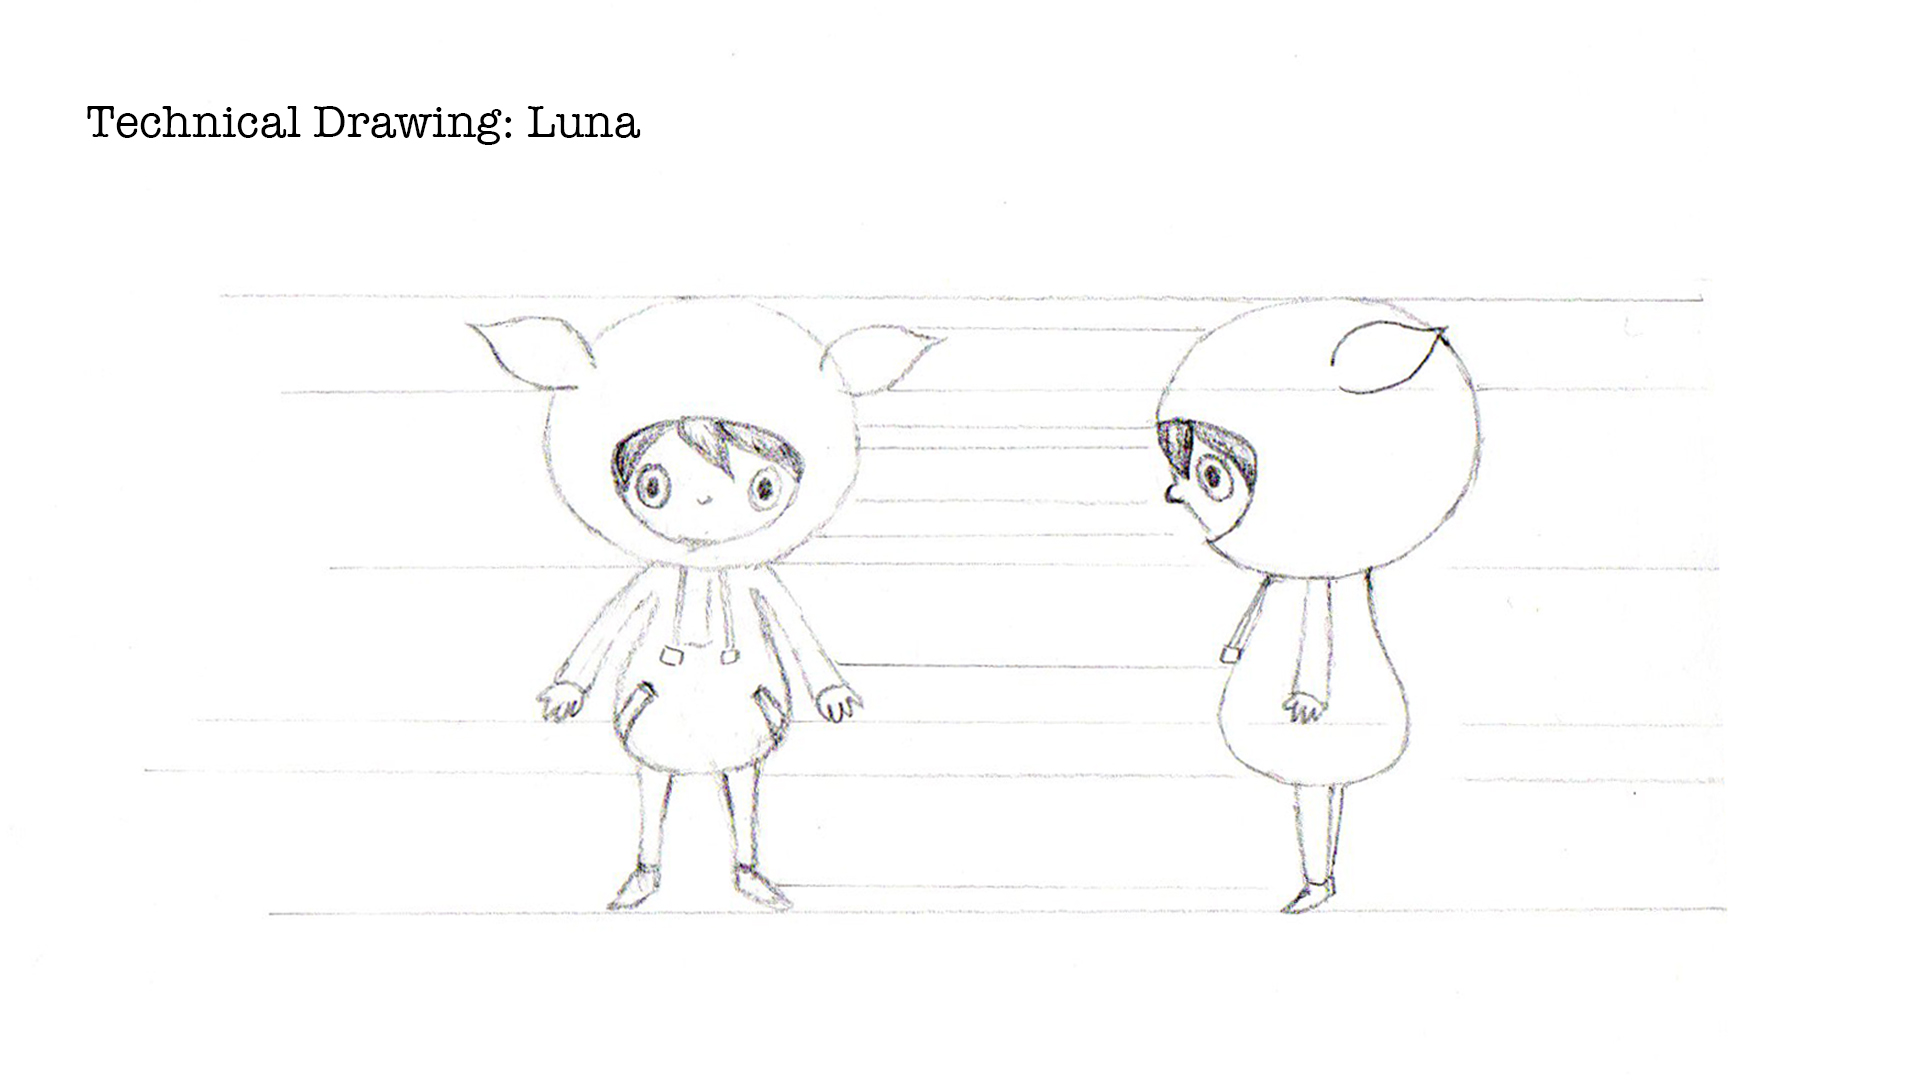 technical drawing of luna (2017)